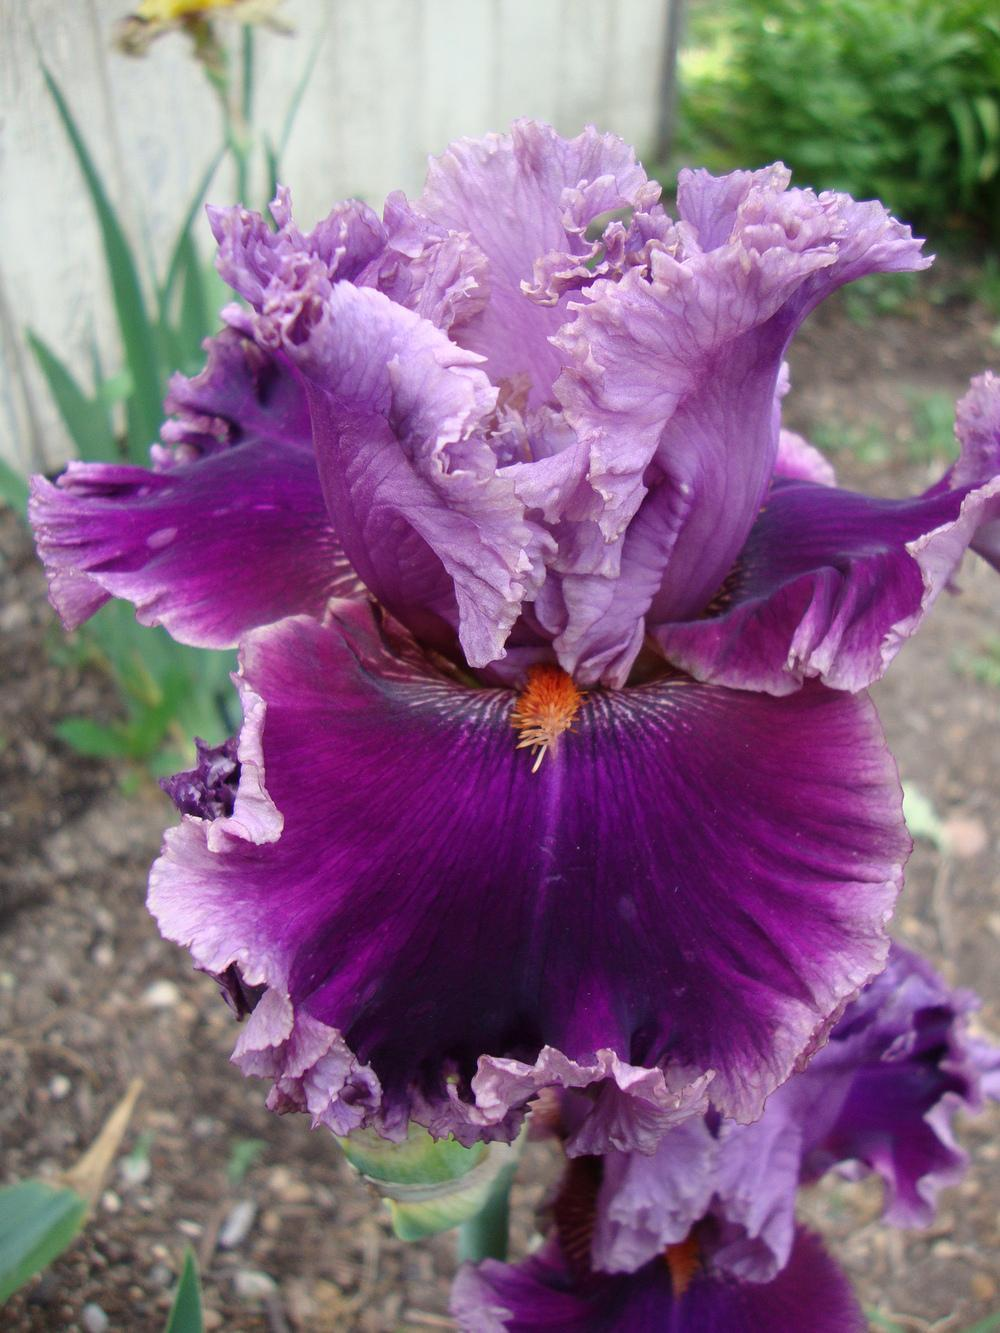 Photo Of The Bloom Of Tall Bearded Iris Iris Another -5373